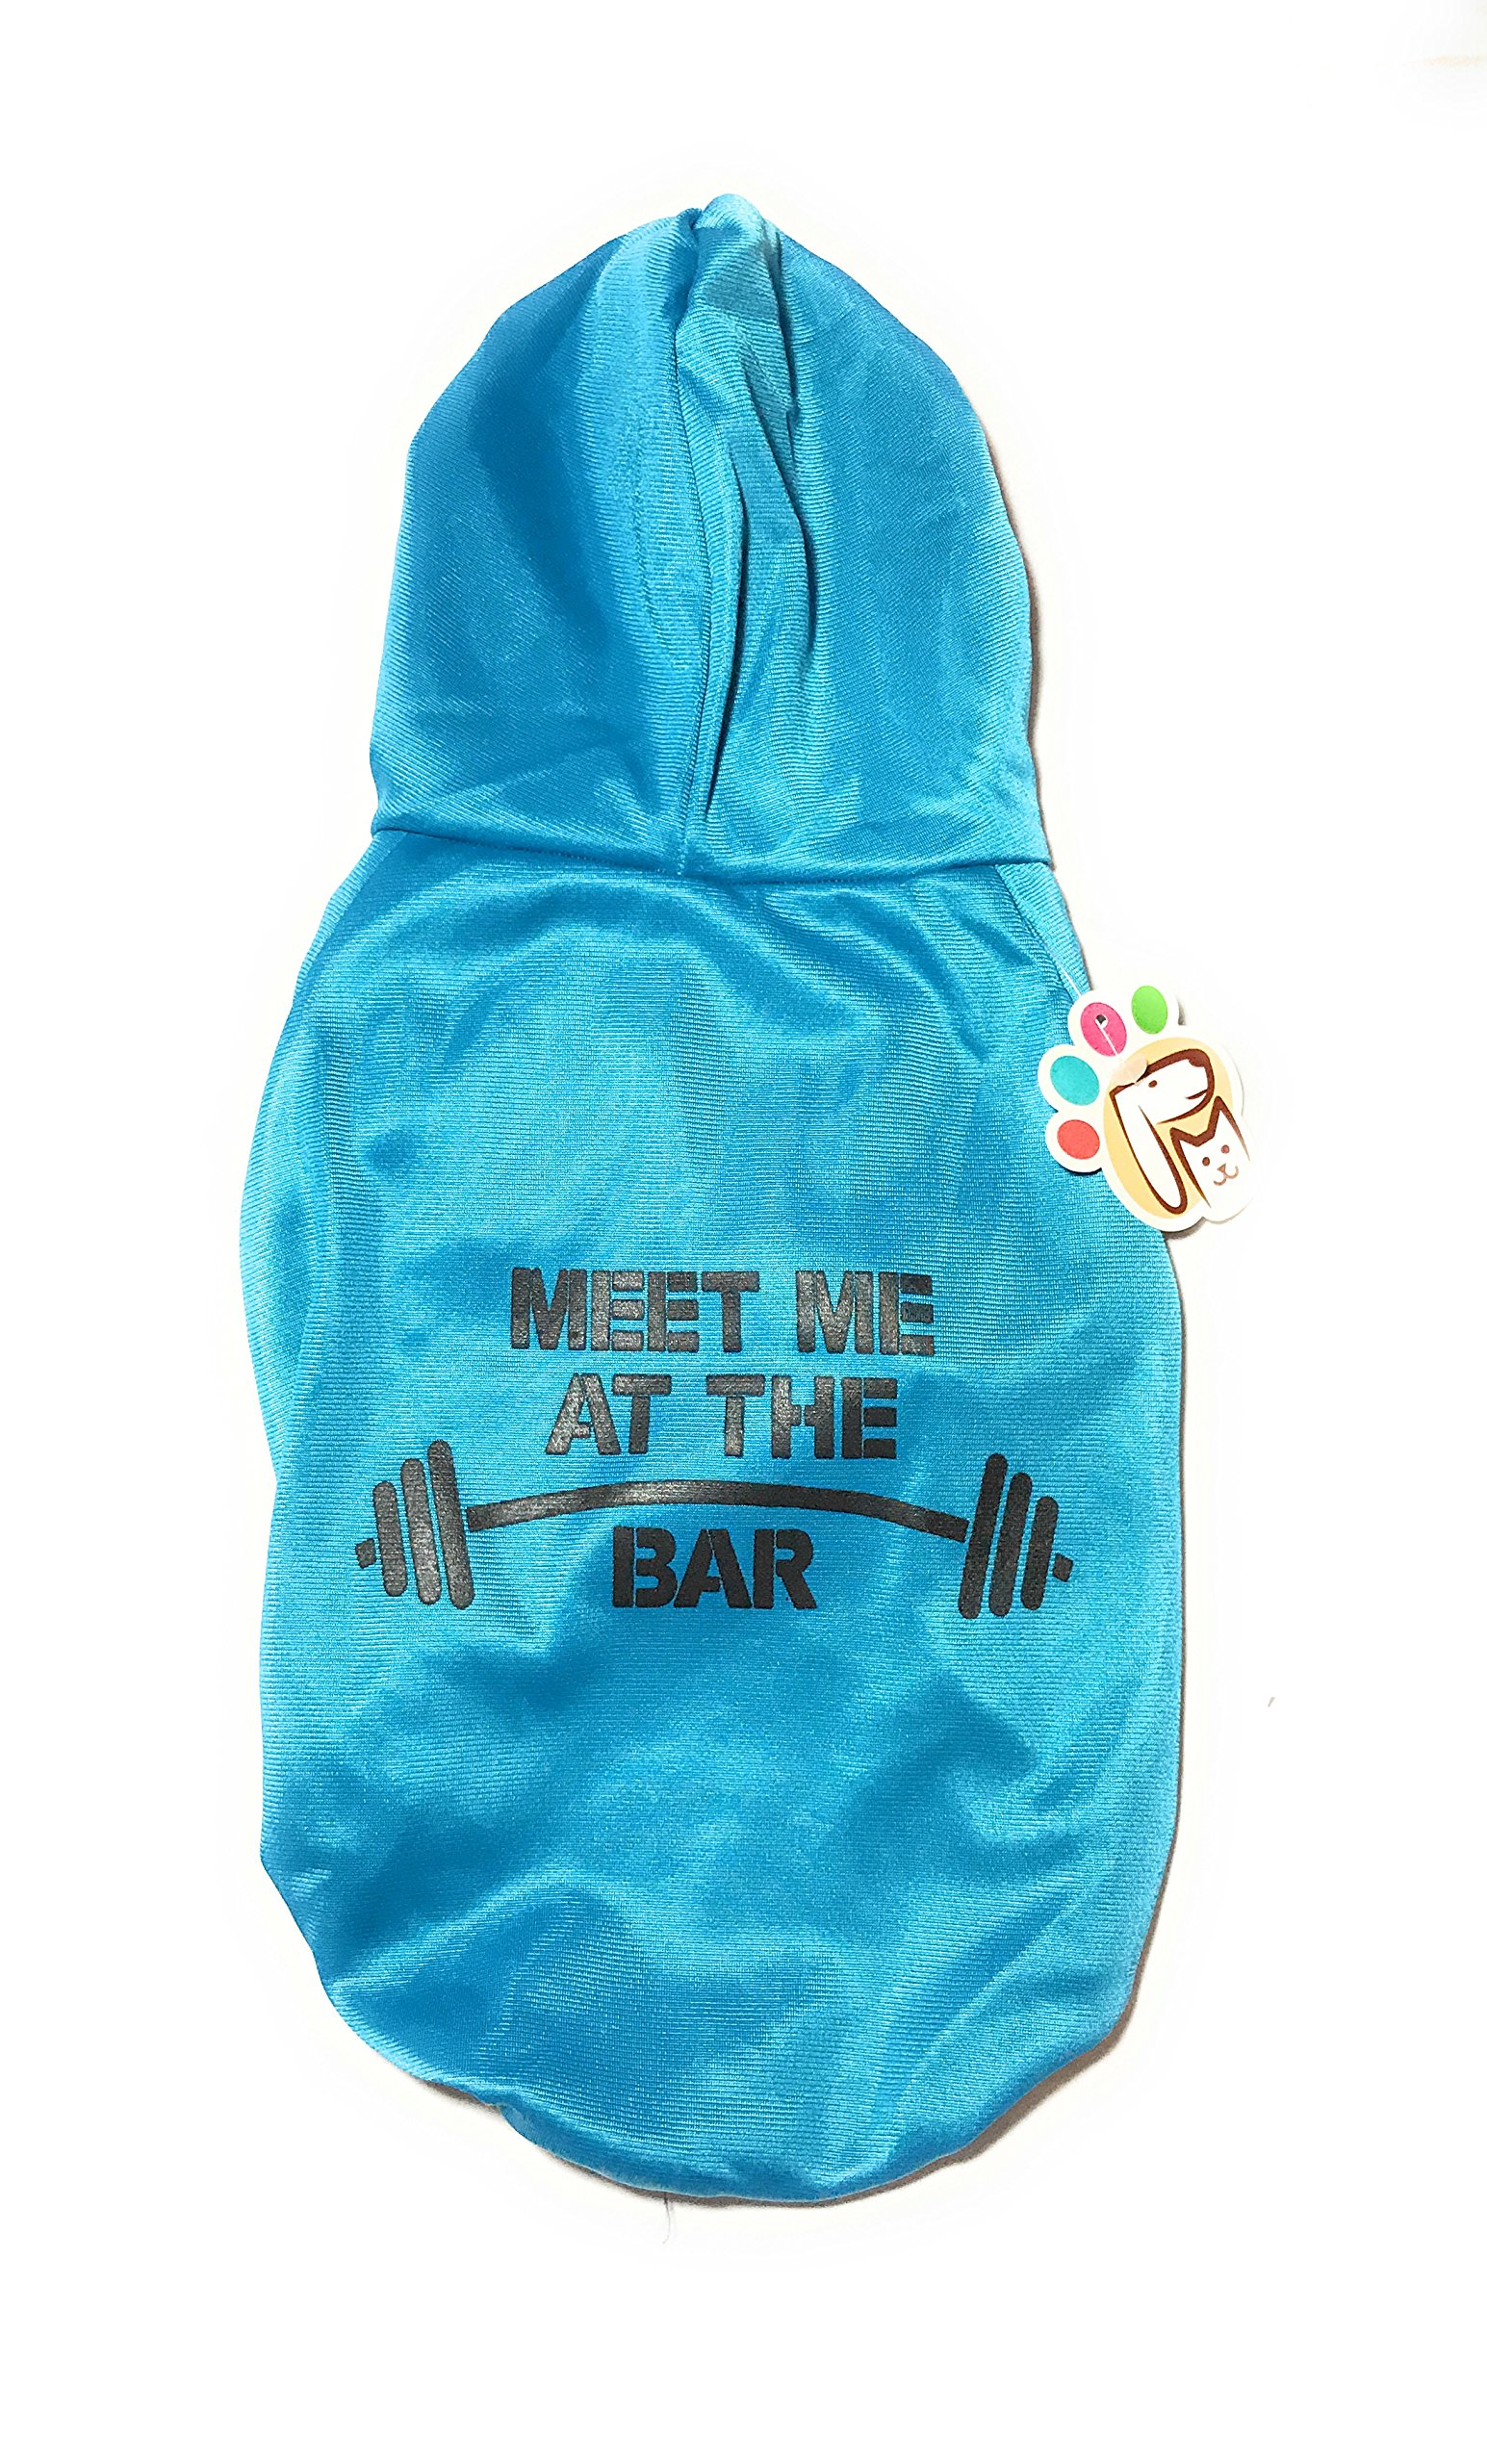 Dog or Puppy Sweater Hoodie ´Meet Me At The Bar´ Blue for Small or Medium Pets S size/ Small Fashion and Funny Hoodie Shirt Petmont Brand For Boys Or Girls